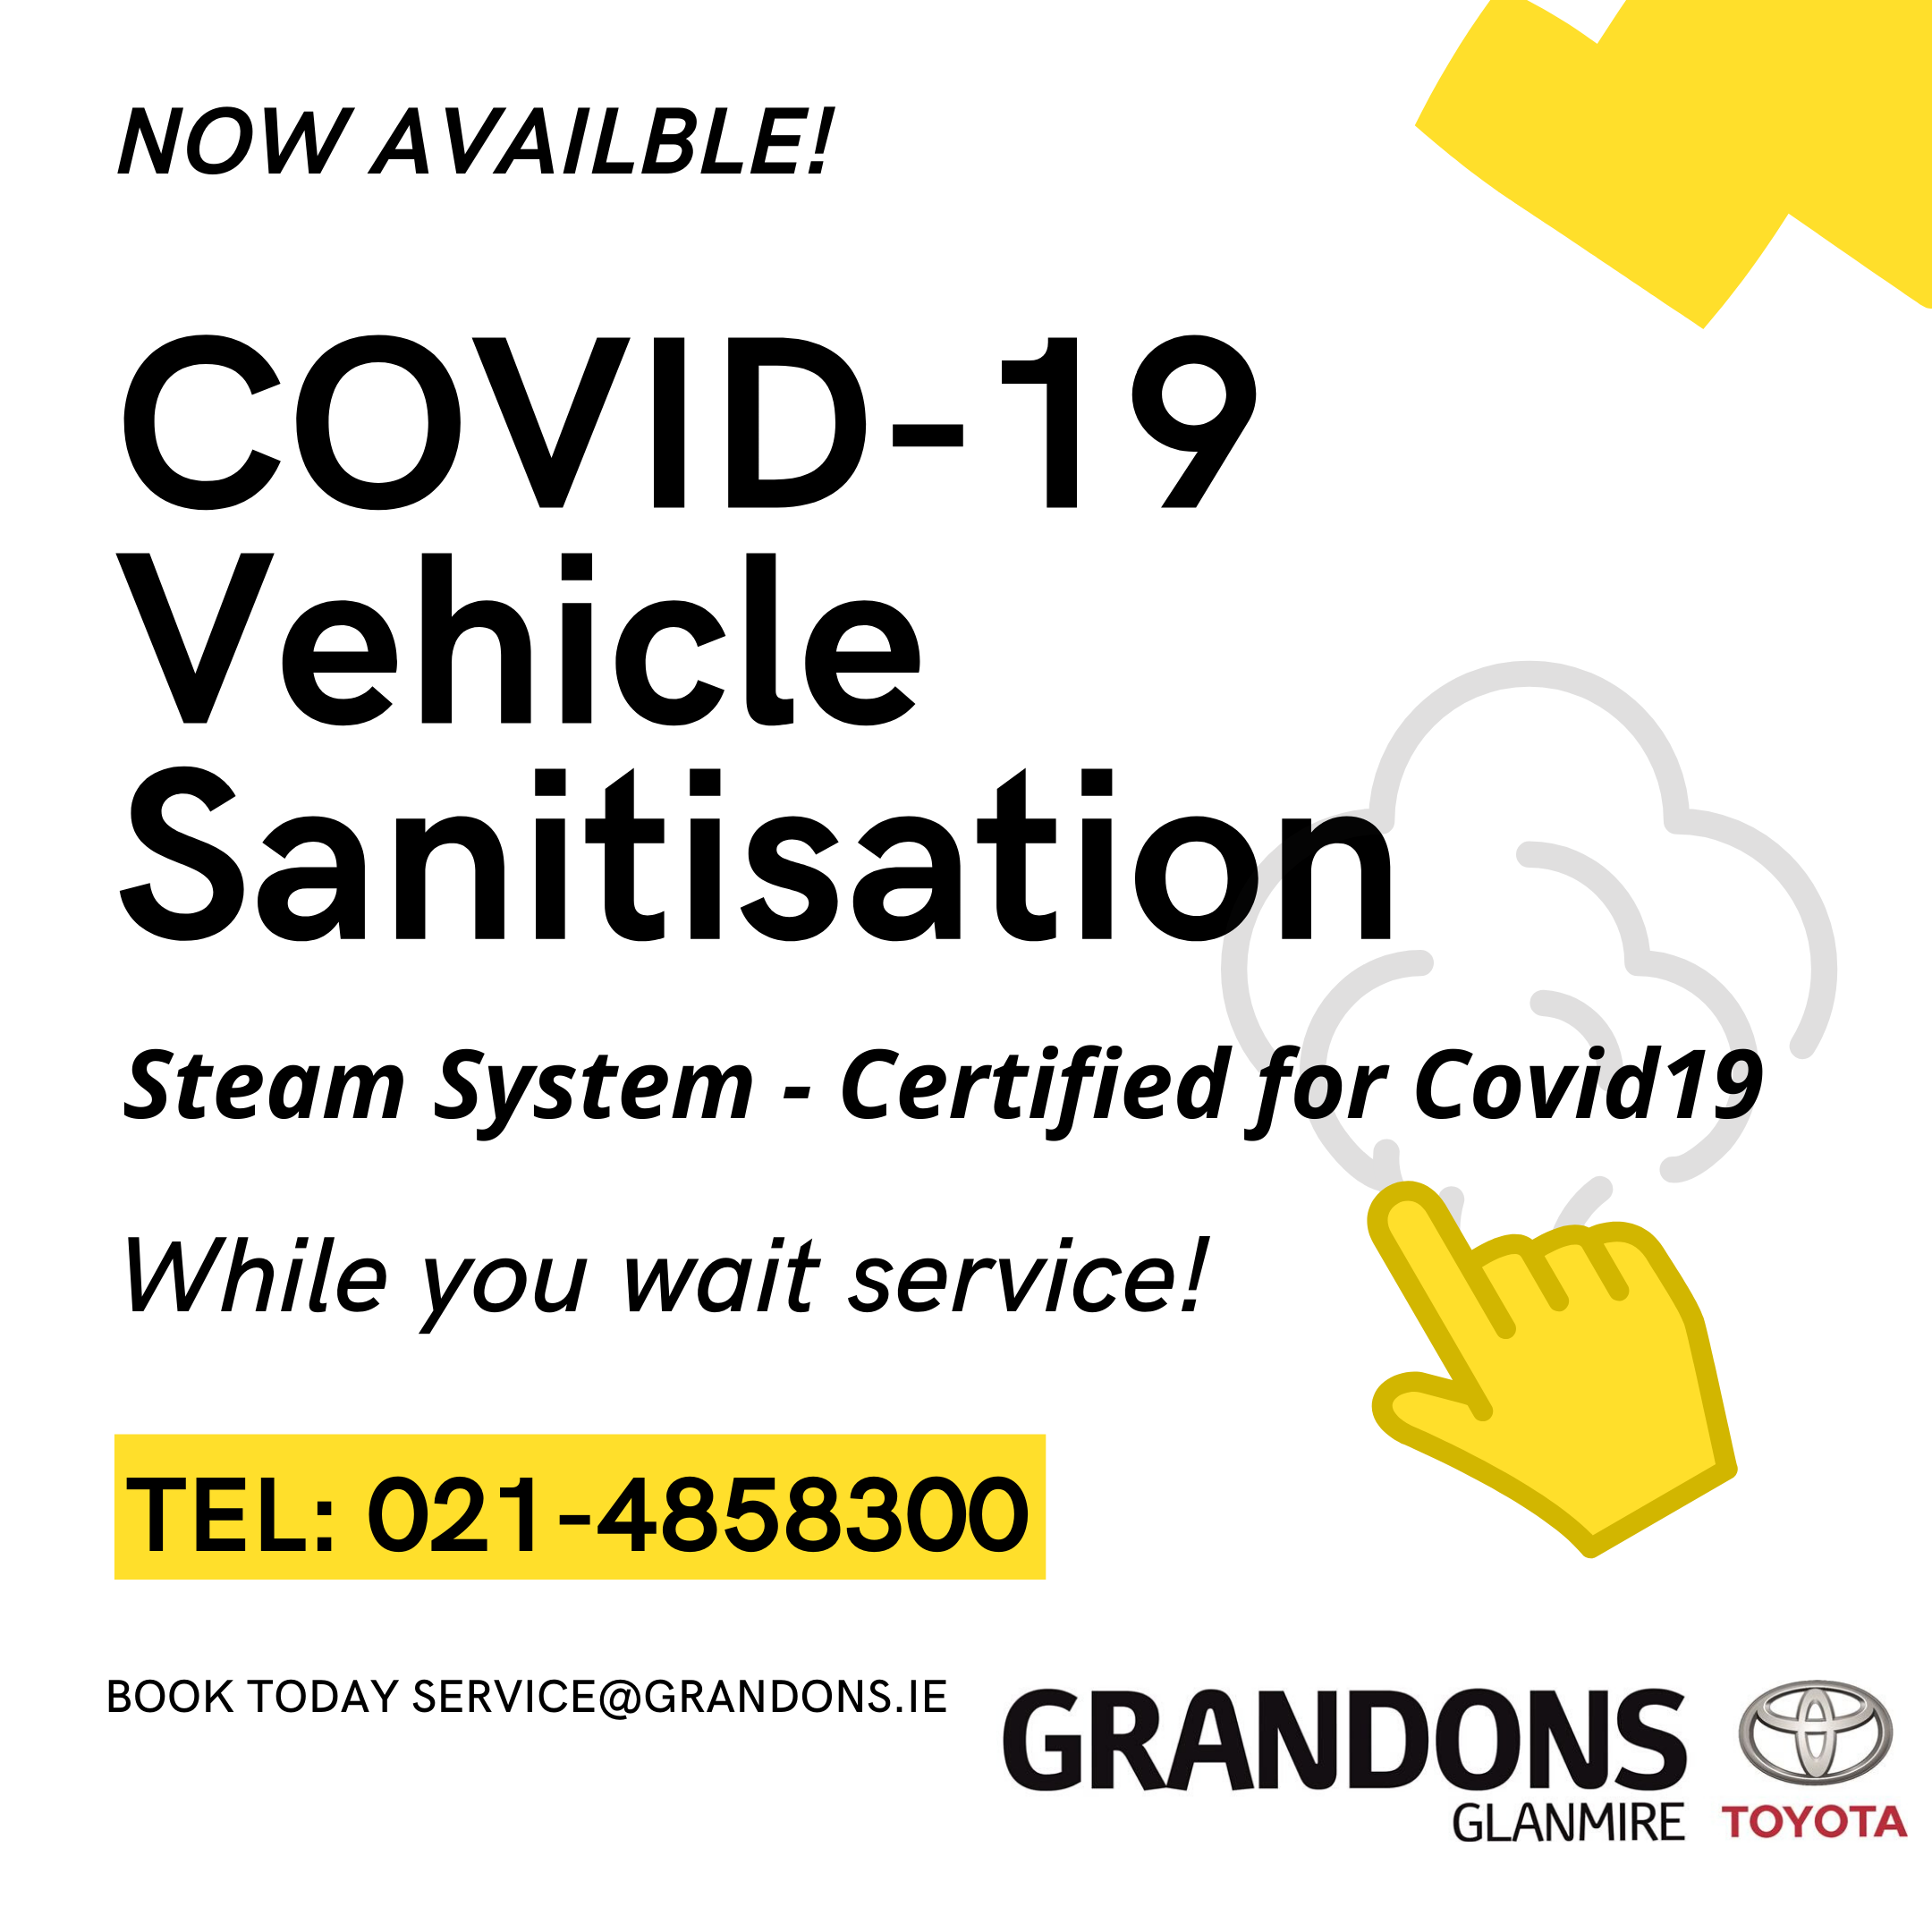 Covid19 Vehicle Sanitisation Service Gradons Toyota cork whil you wait